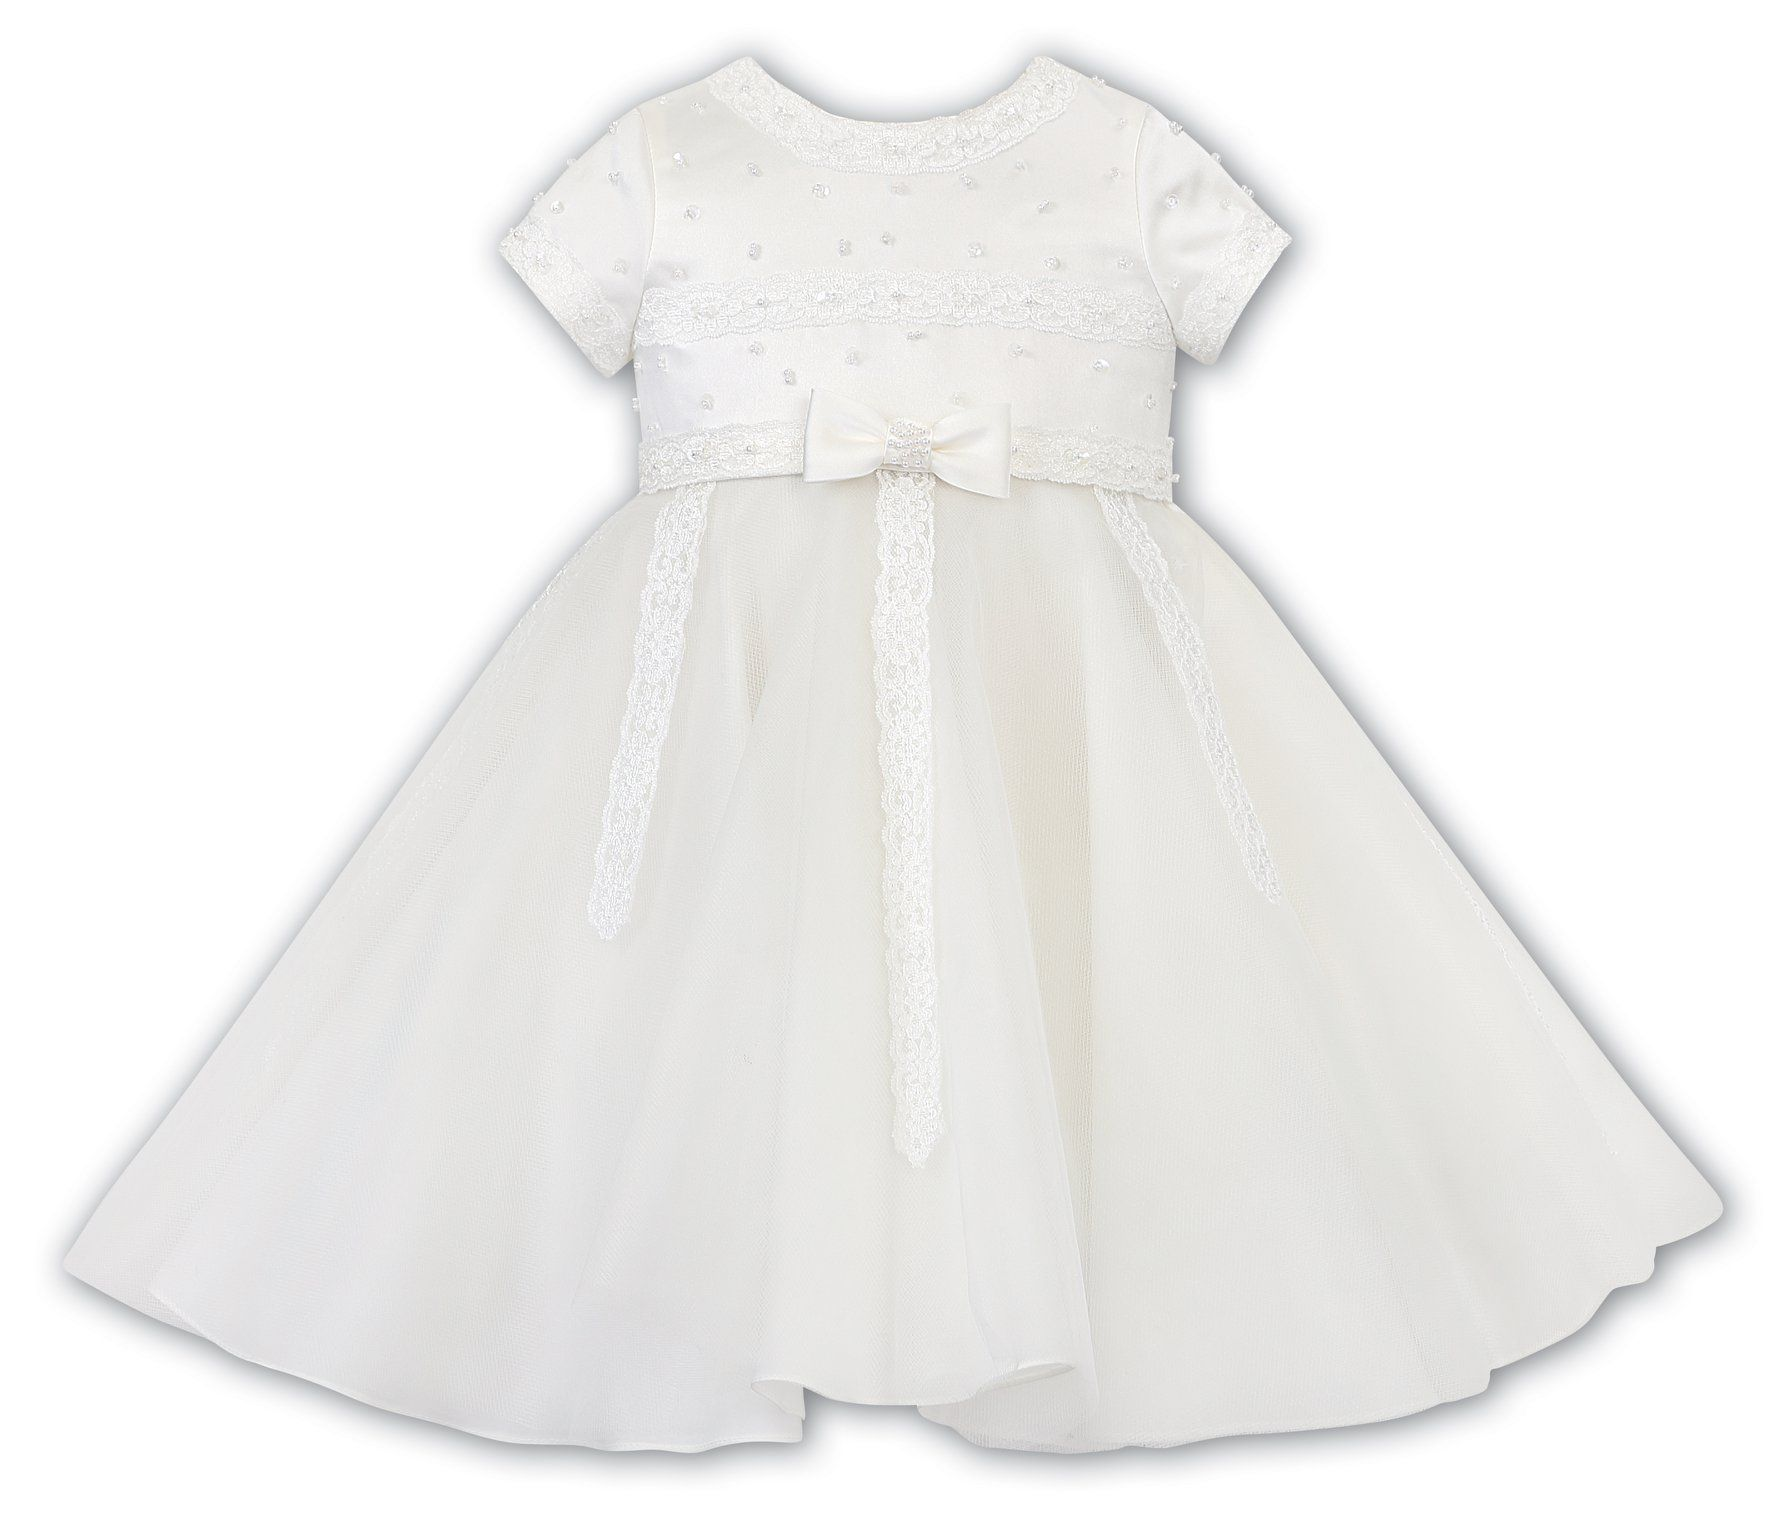 Sarah Louise -a- Flowergirl FG Dress Ivory 070117